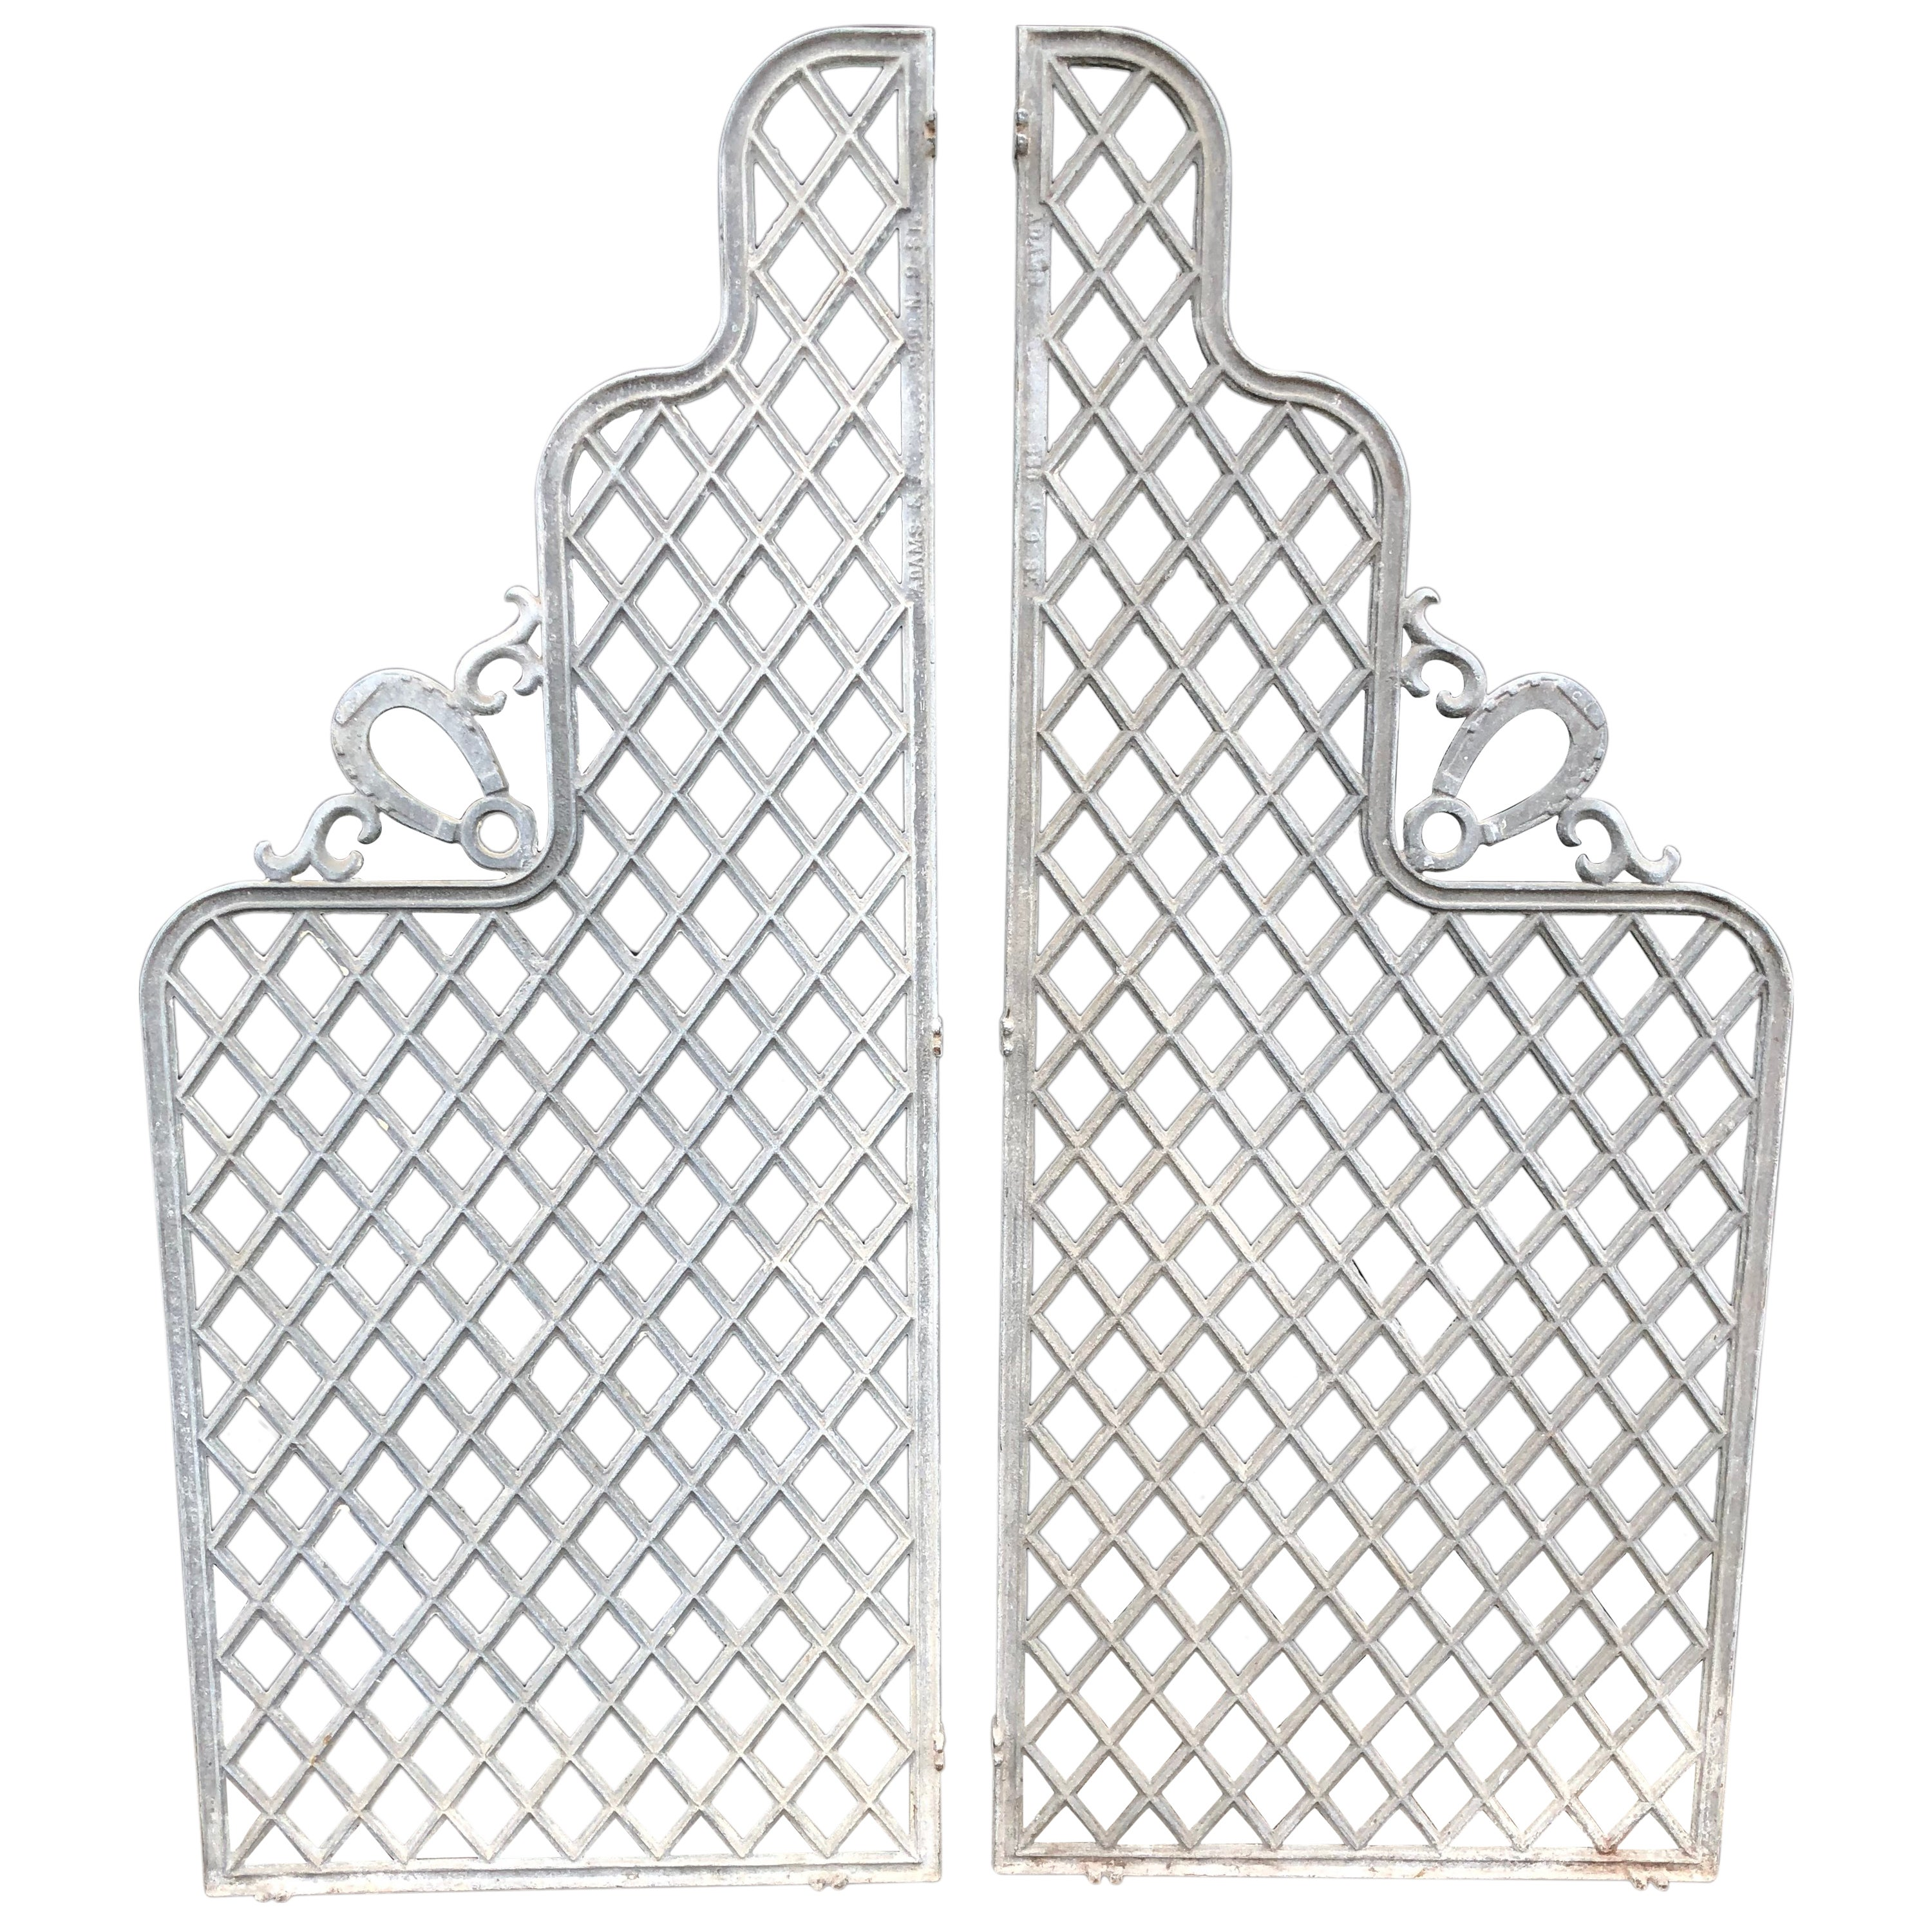 Wonderful Vintage Set of Iron Architectural Garden Gates